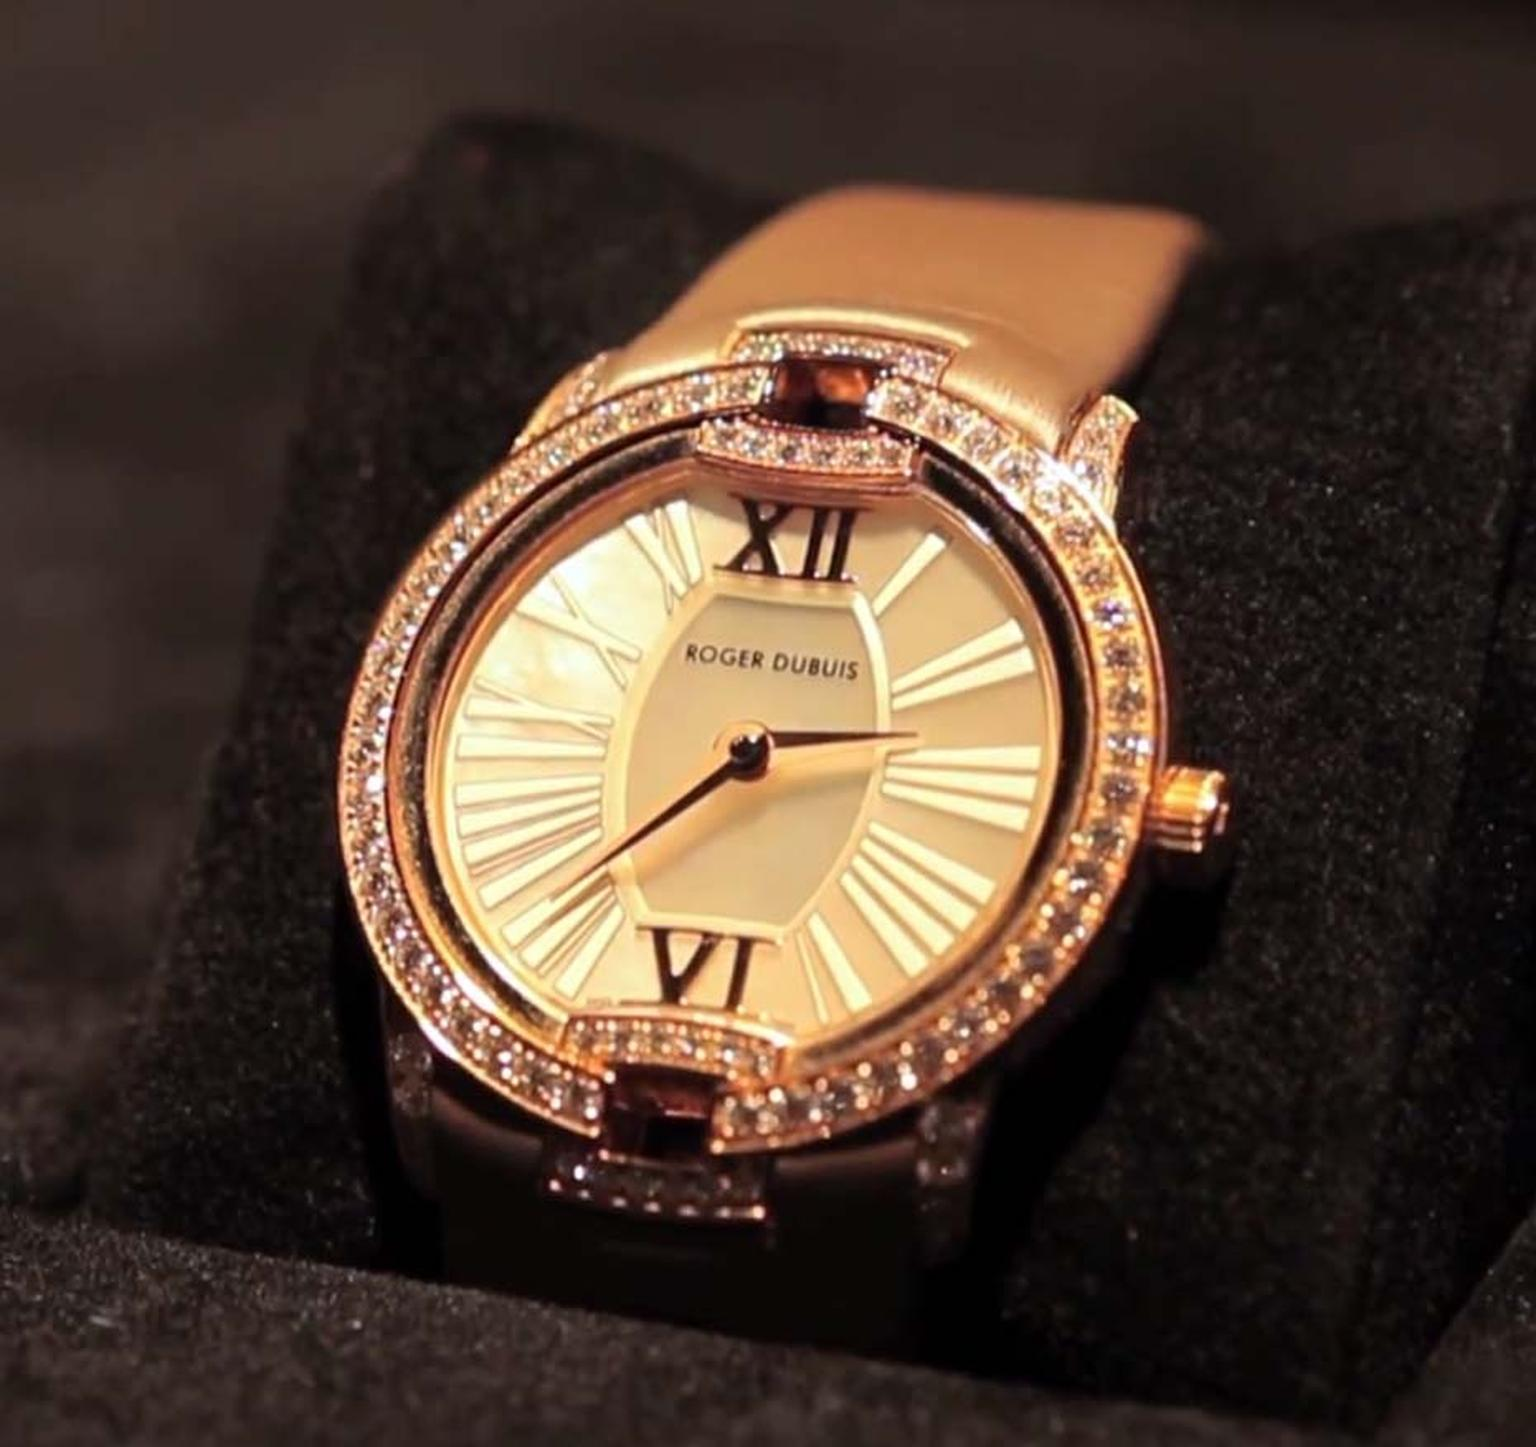 Roger Dubuis Velvet watch with diamonds and pink sapphires